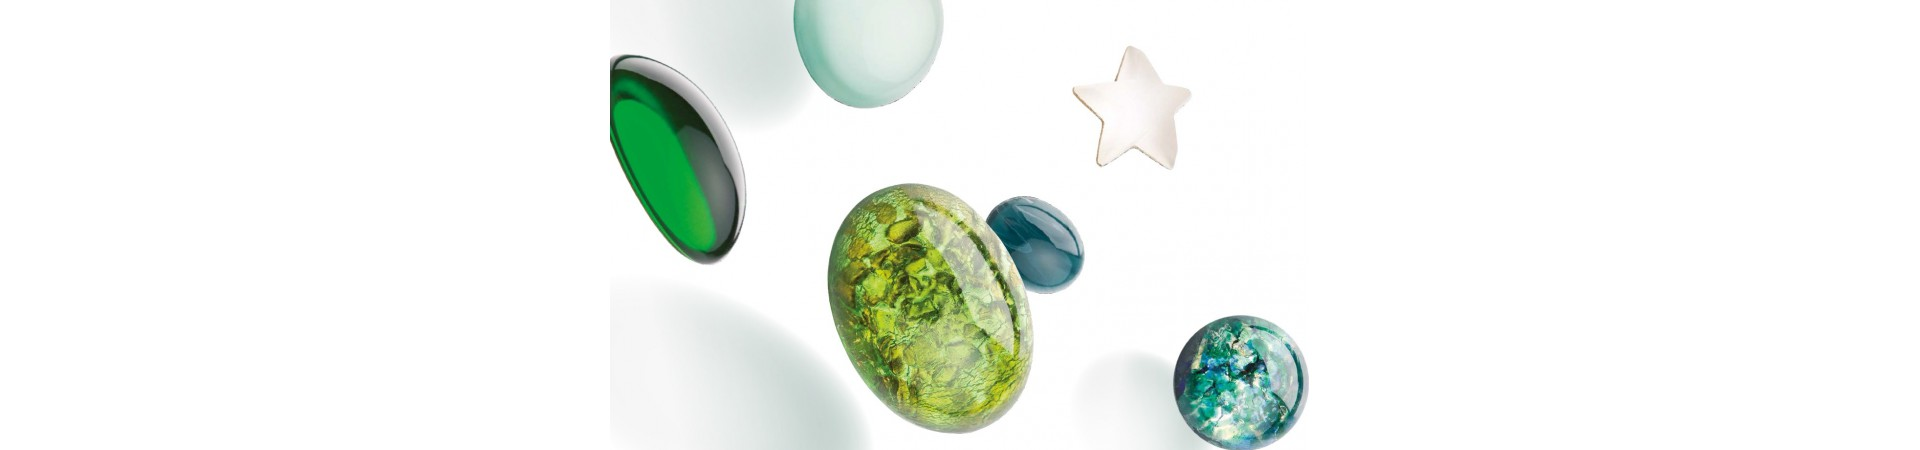 Cabochons are a special collection of stones created from hand-molded glass.